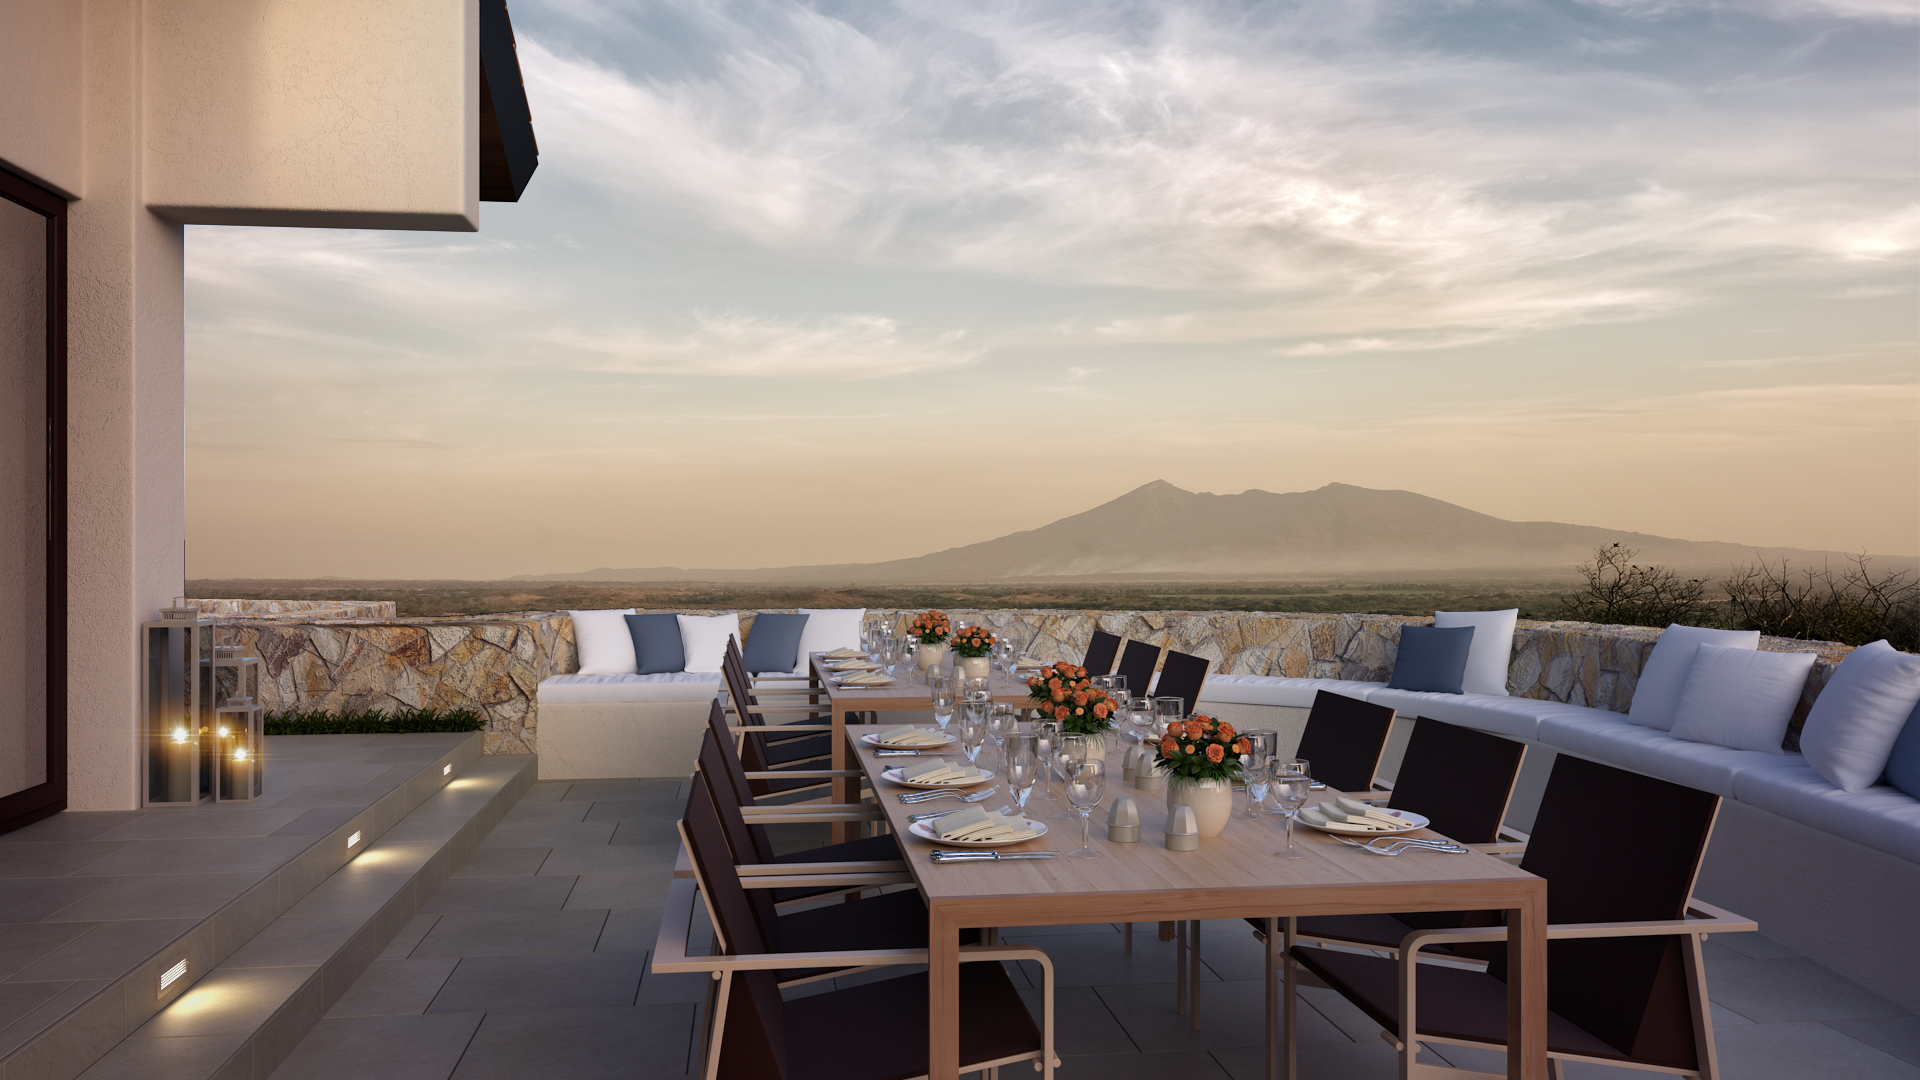 outdoor patio seating with moutain silhouette in background